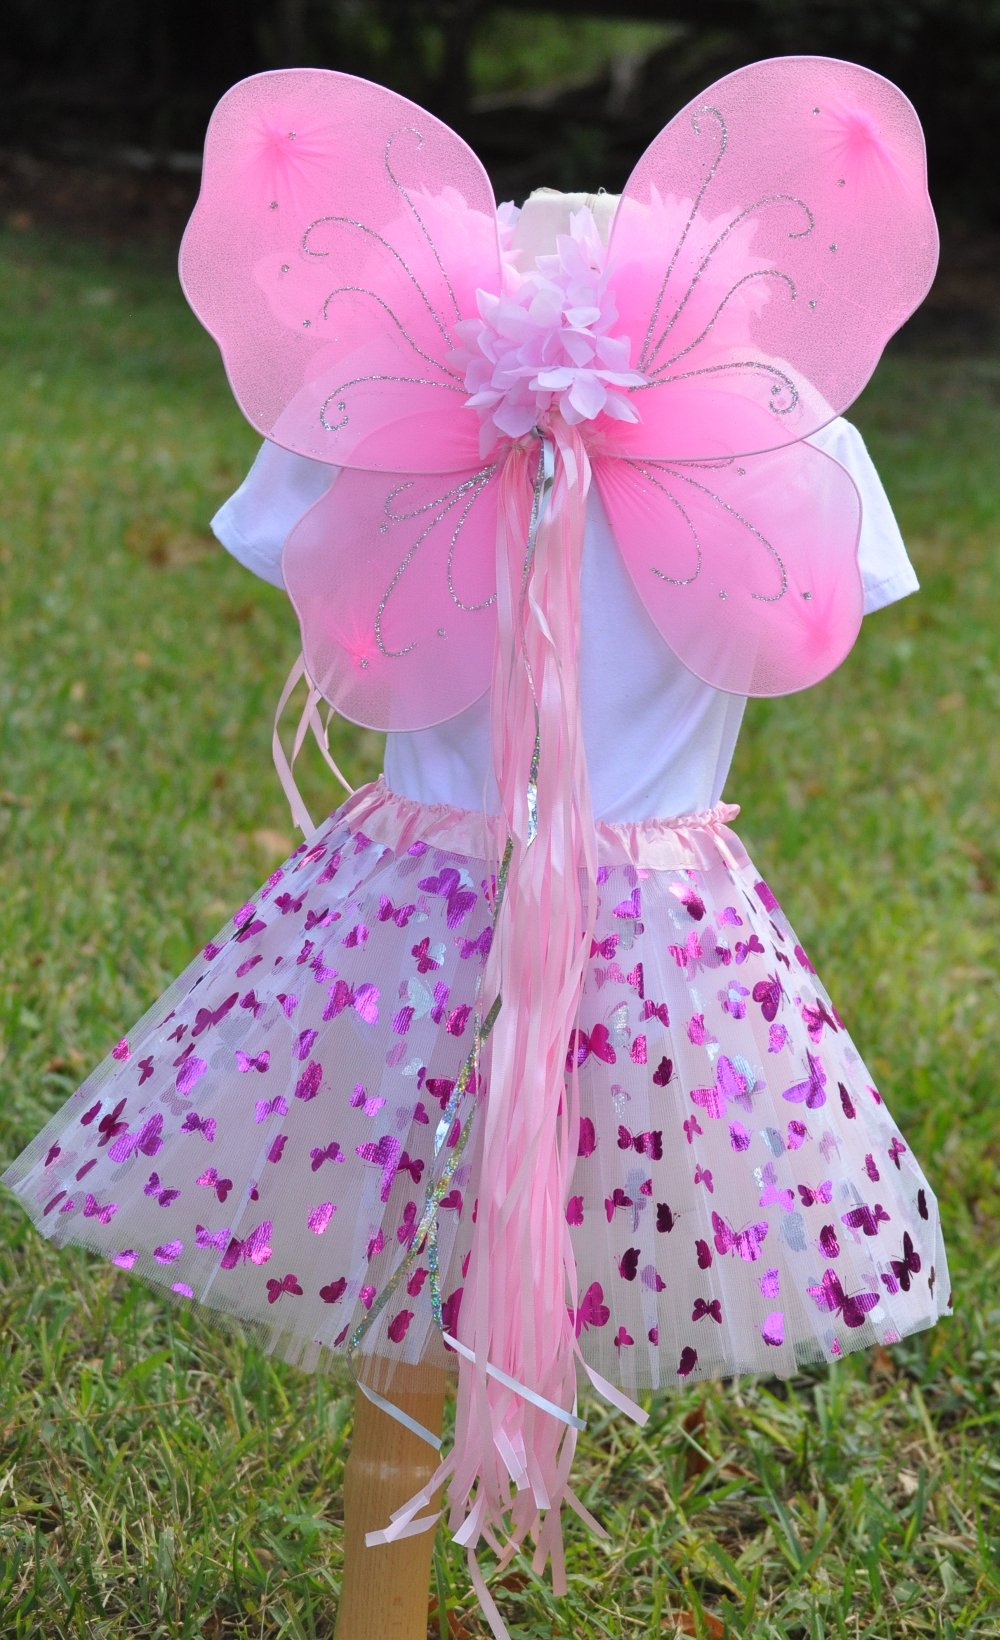 Girls Pink Butterfly Fairy Costume with Wings, Wand and Halo by Fairytale Play (Image #3)